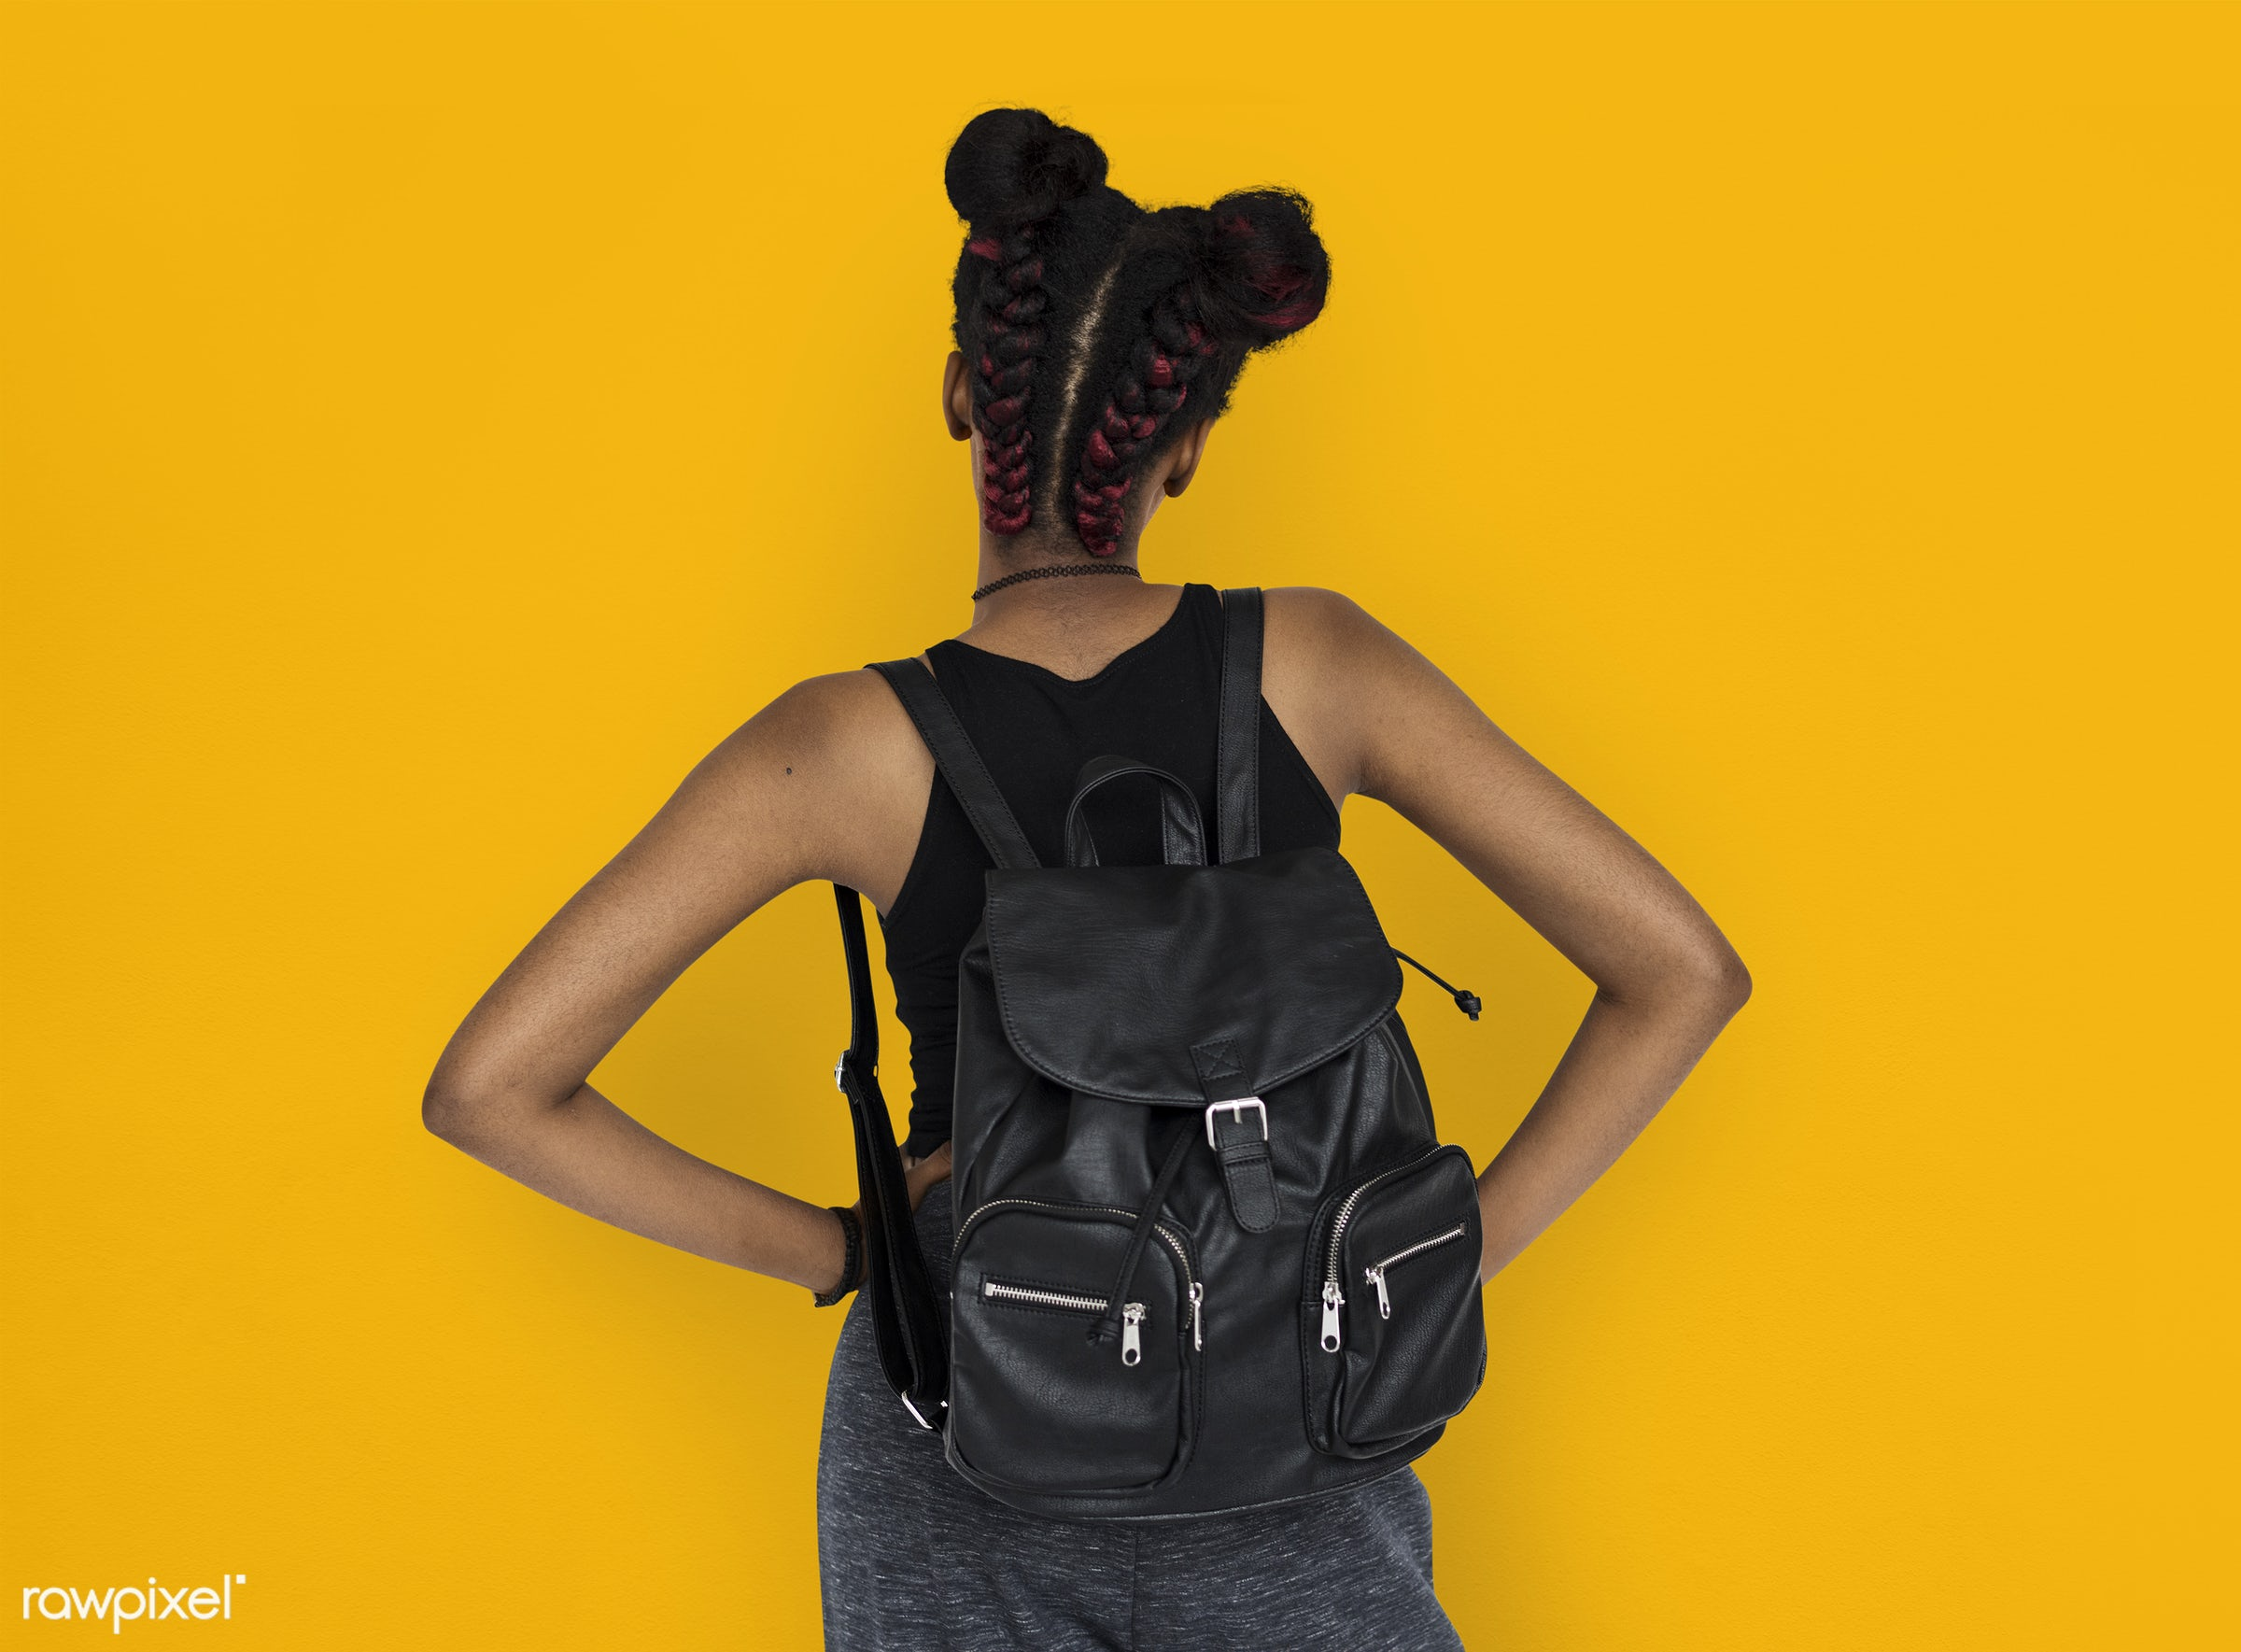 studio, person, african, yellow, people, girl, style, woman, lifestyle, casual, backpack, abstract, isolated, orange, rear...